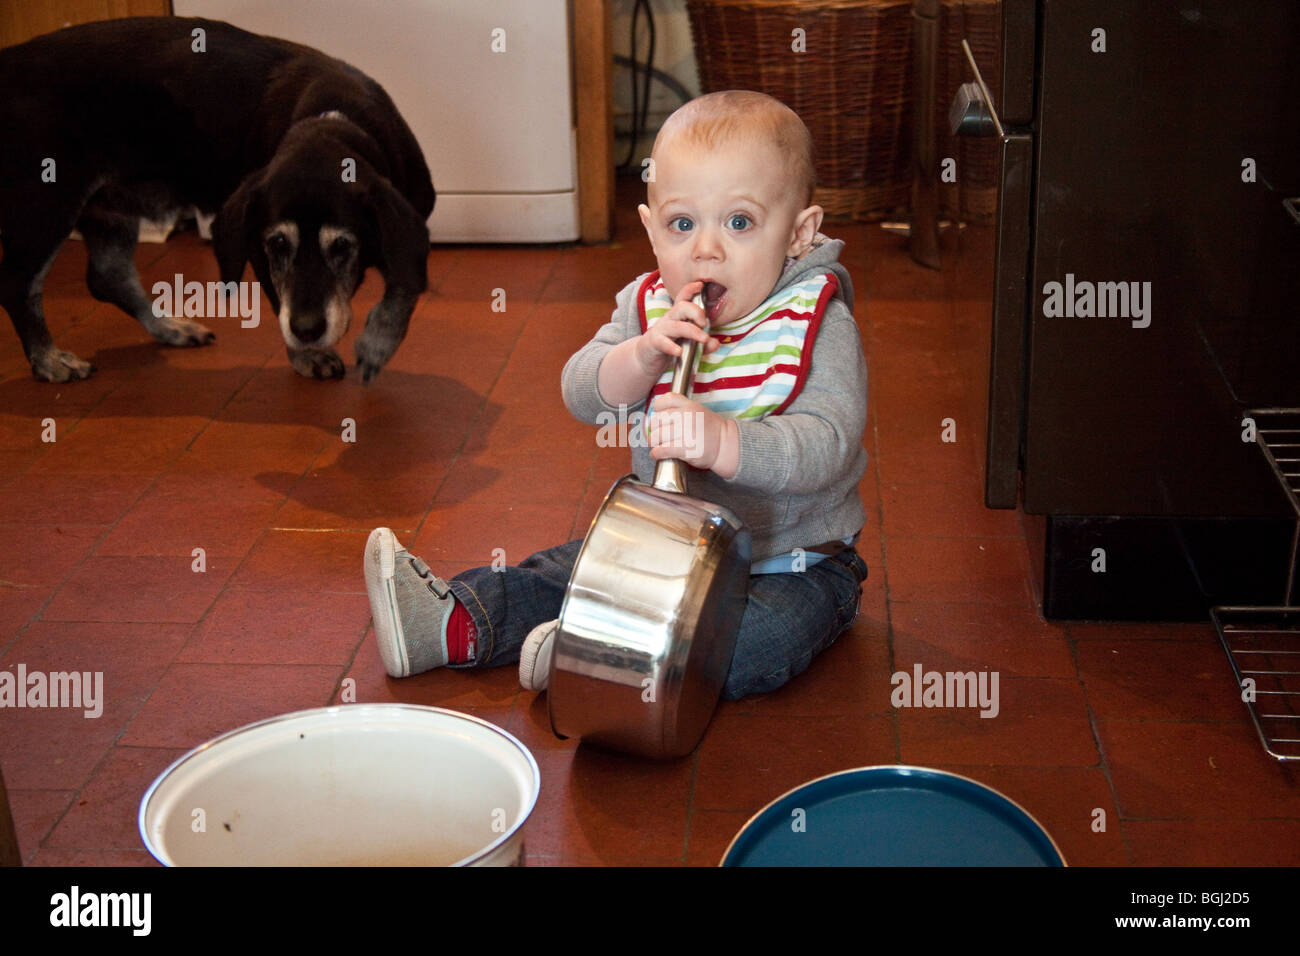 Baby boy (eight months old) playing with pots and pans on the kitchen floor. - Stock Image